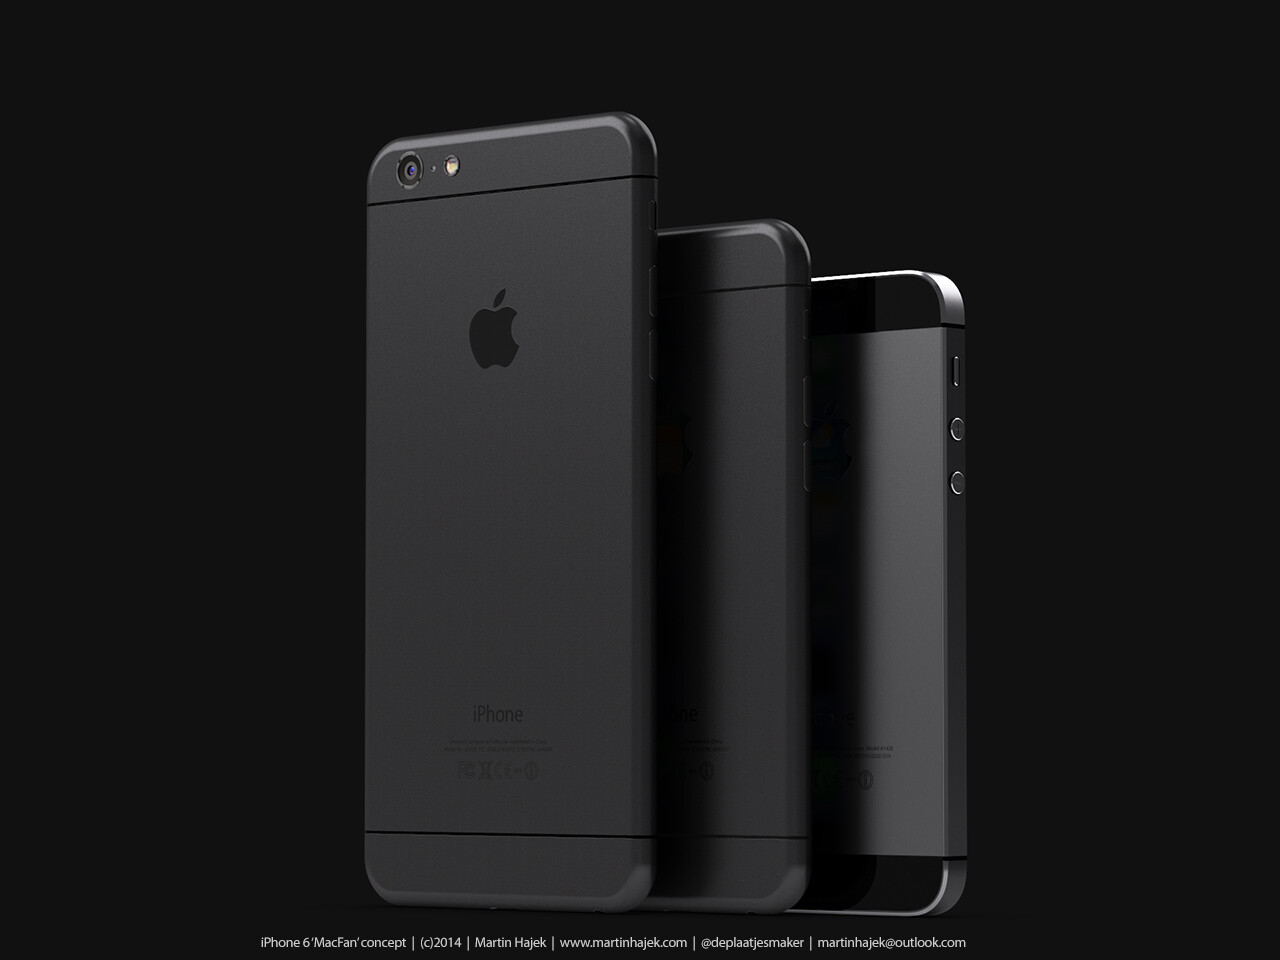 apple 39 s 5 5 inch iphone 6 phablet facing delays worst case pushes release date to 2015. Black Bedroom Furniture Sets. Home Design Ideas